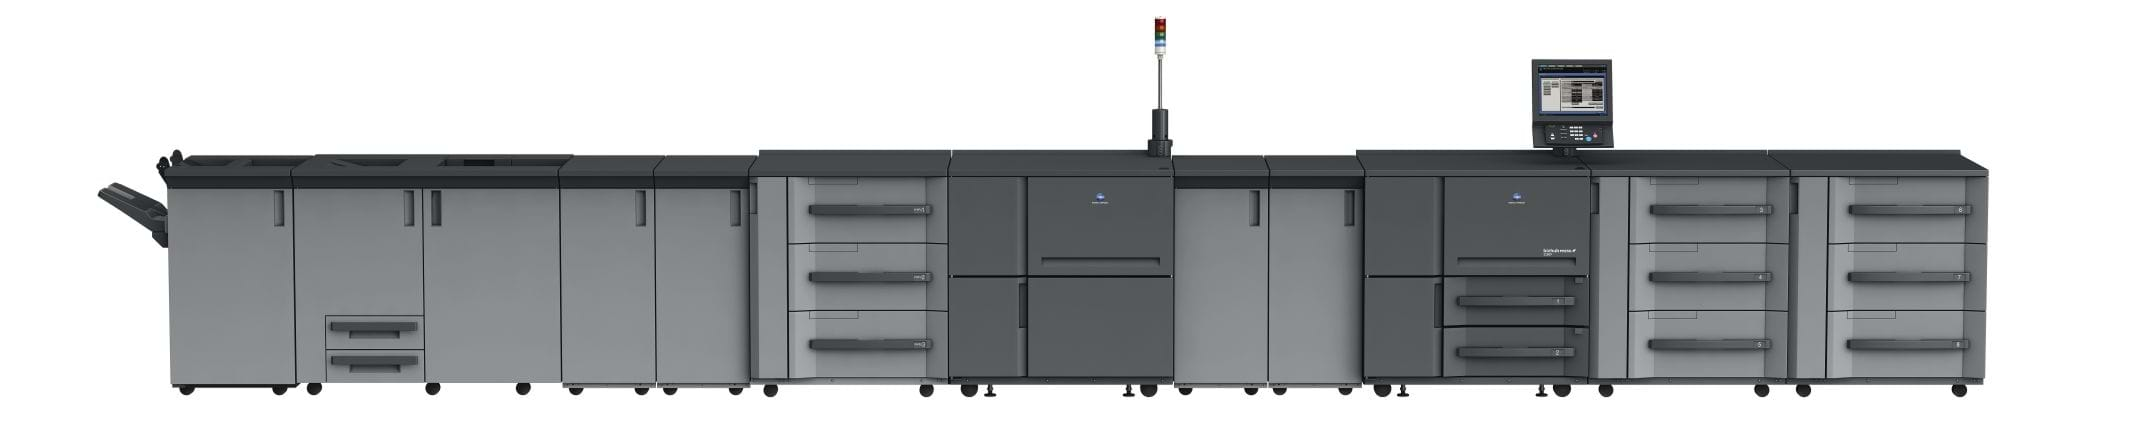 Konica Minolta bizhub press 2250p professional printer